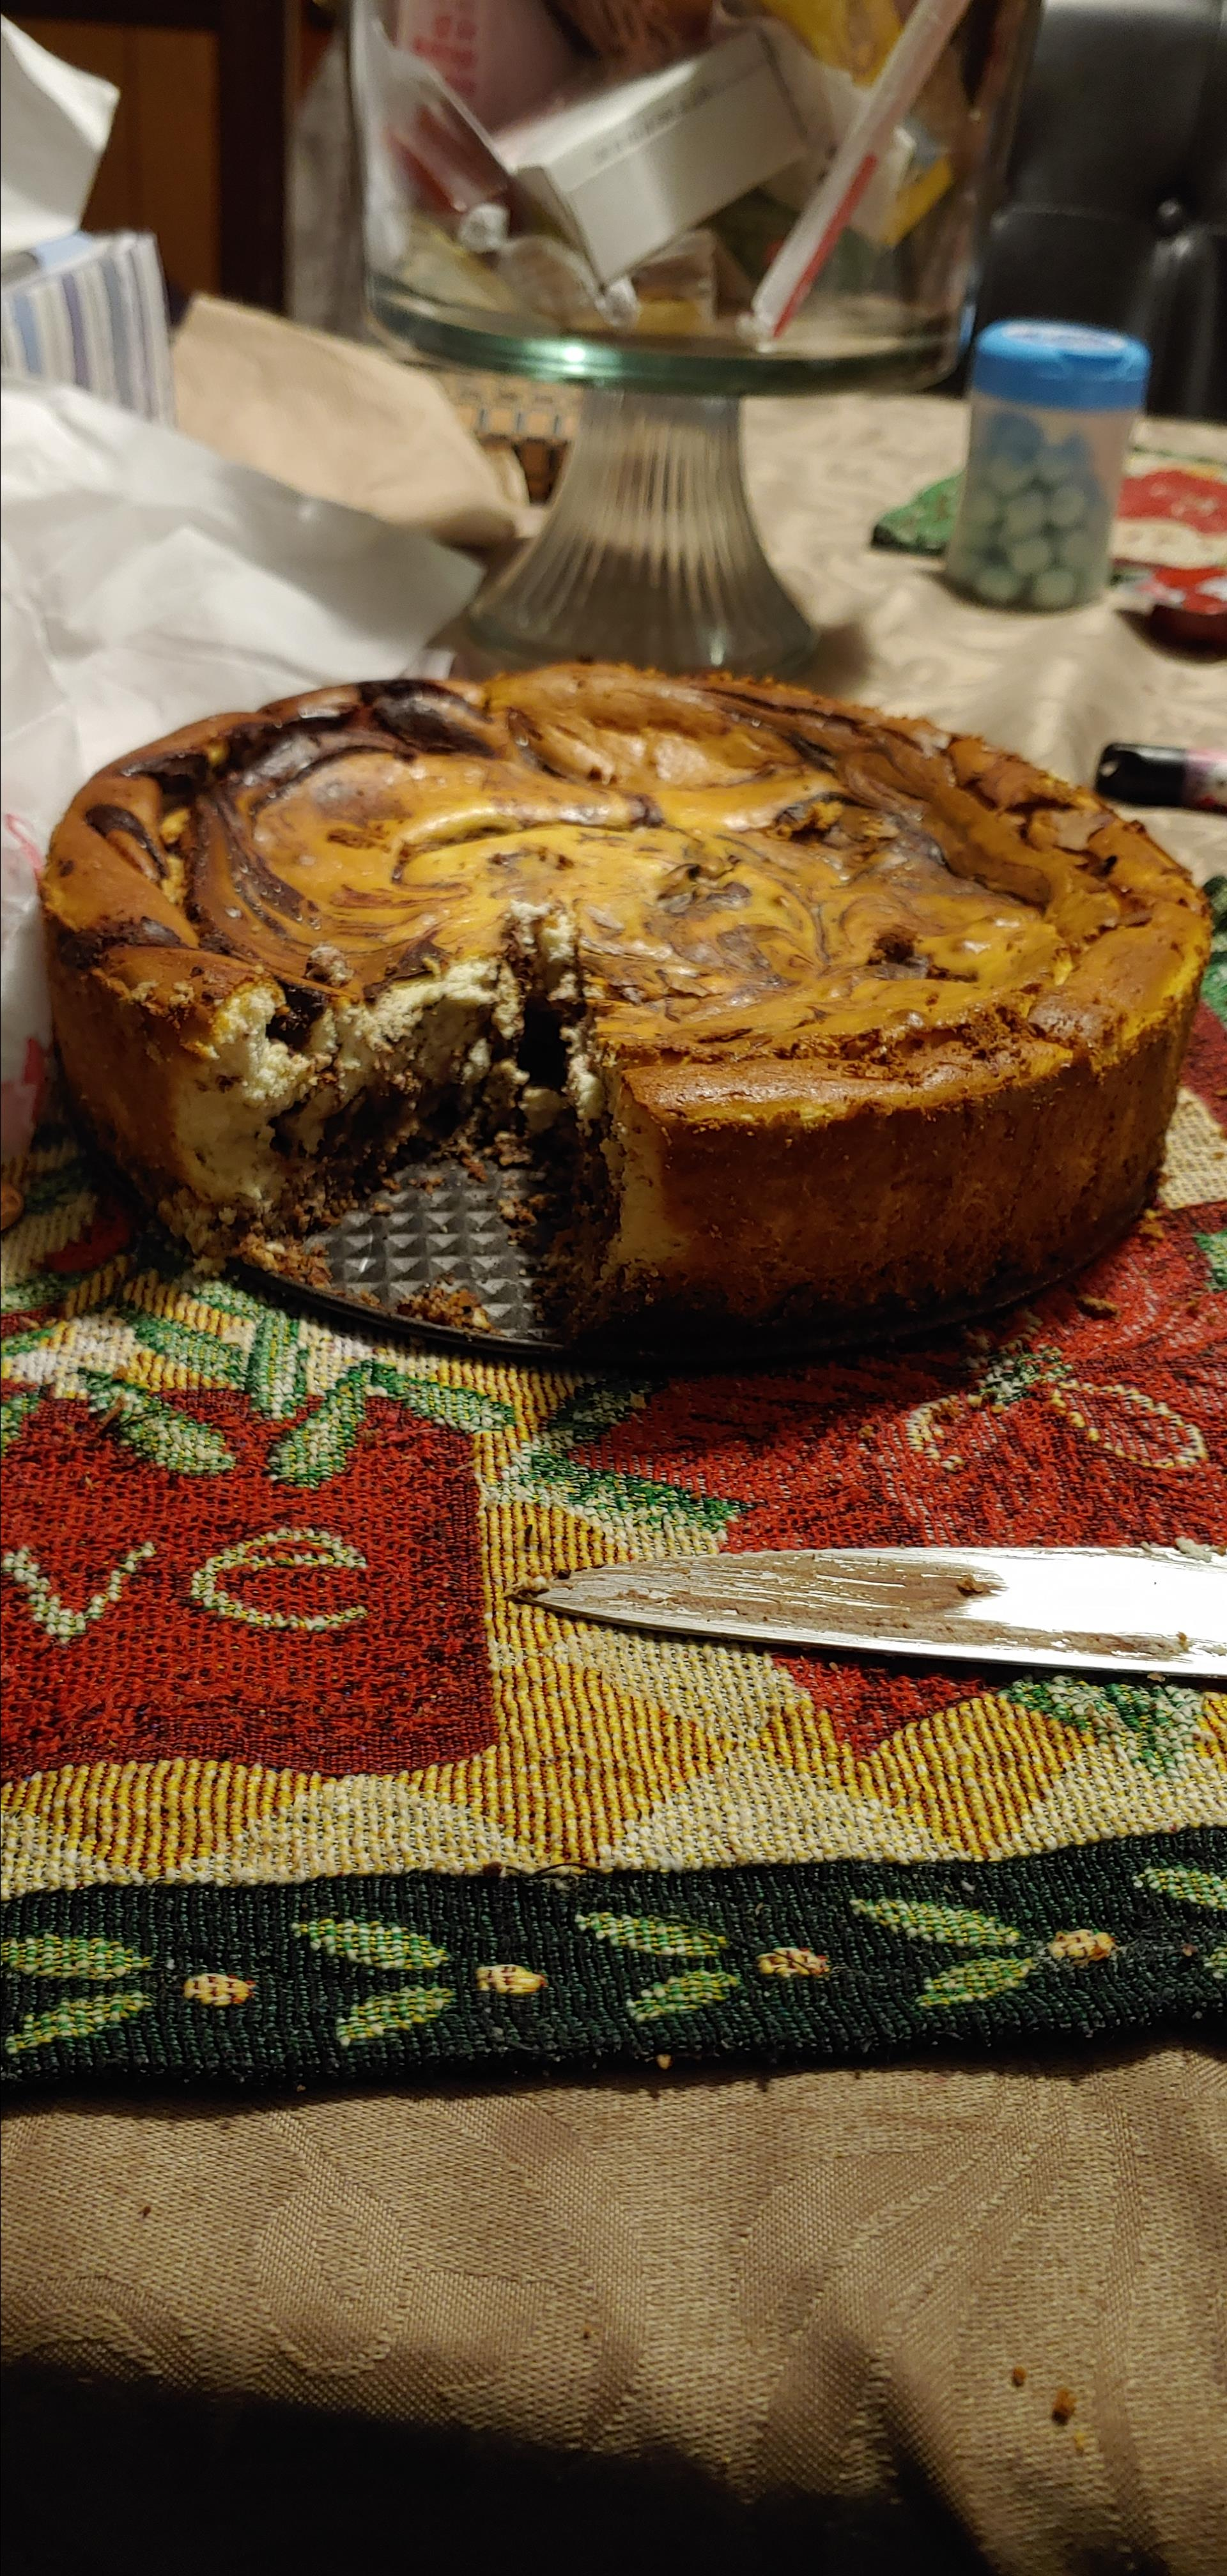 Low-Carb Chocolate Swirl Cheesecake